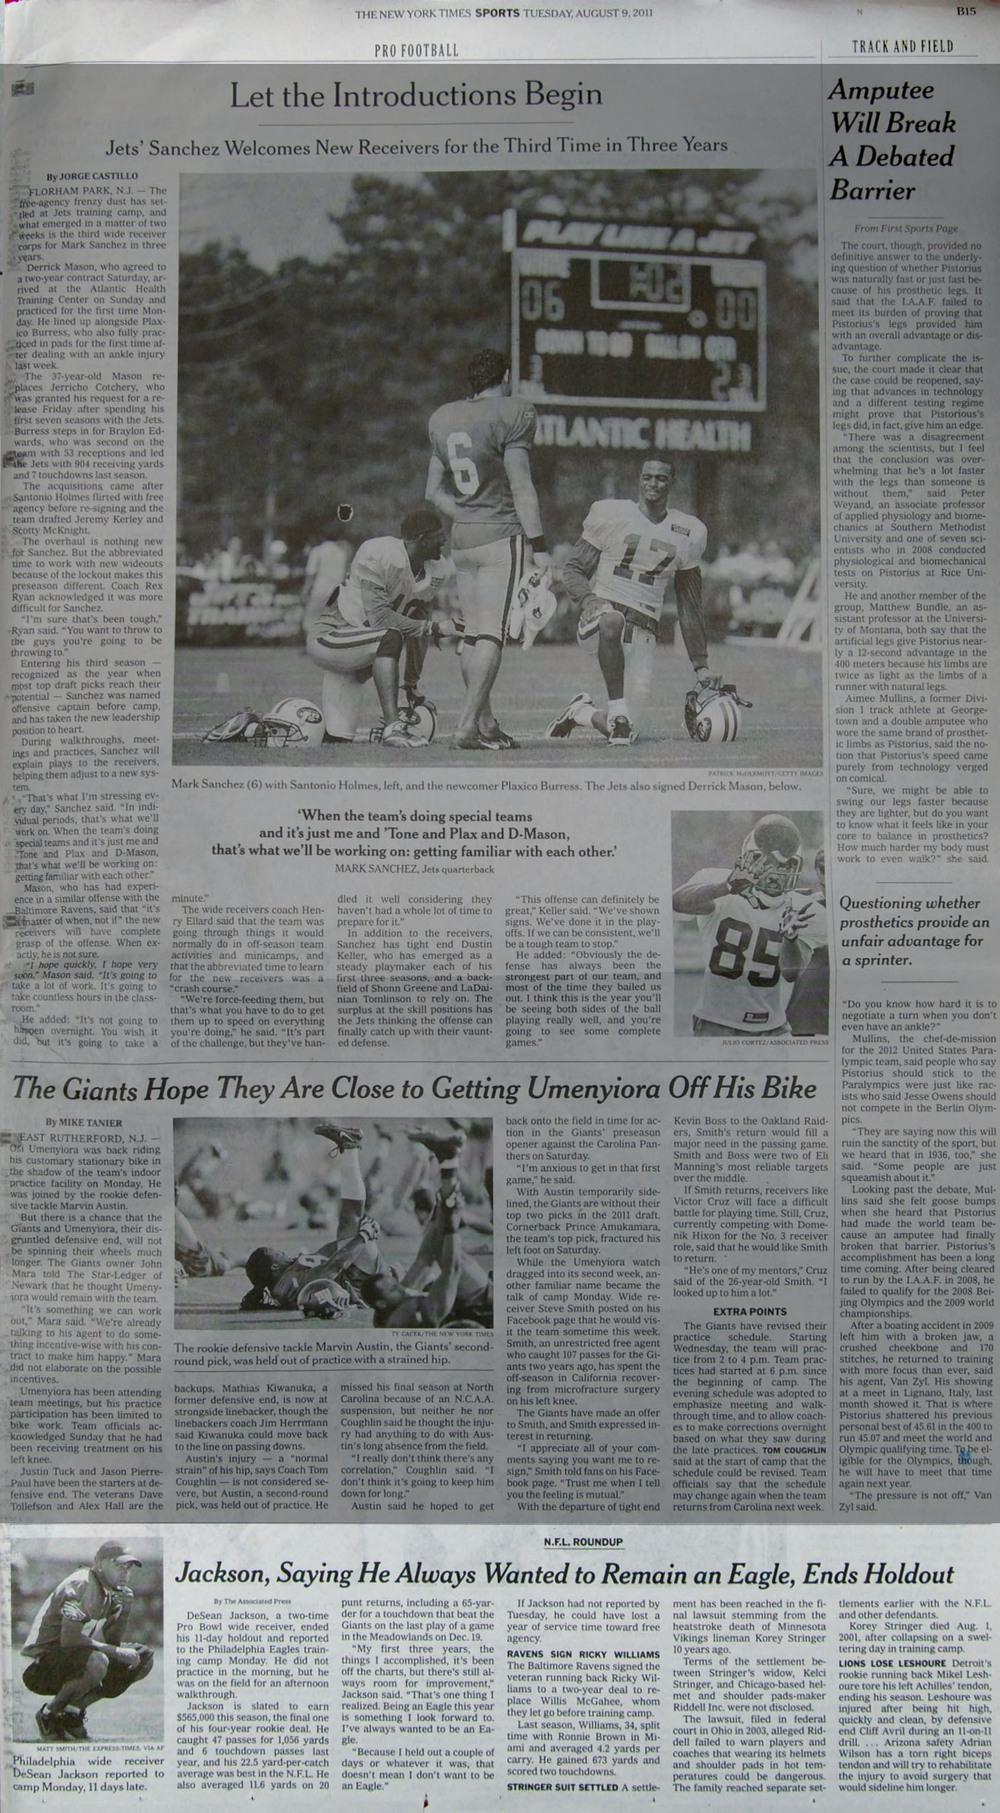 The New York Times, Tuesday, August 9th, 2011. Eagles wide receiver DeSean Jackson made his first appearance at Training Camp at Lehigh University after holding out for a new contract.